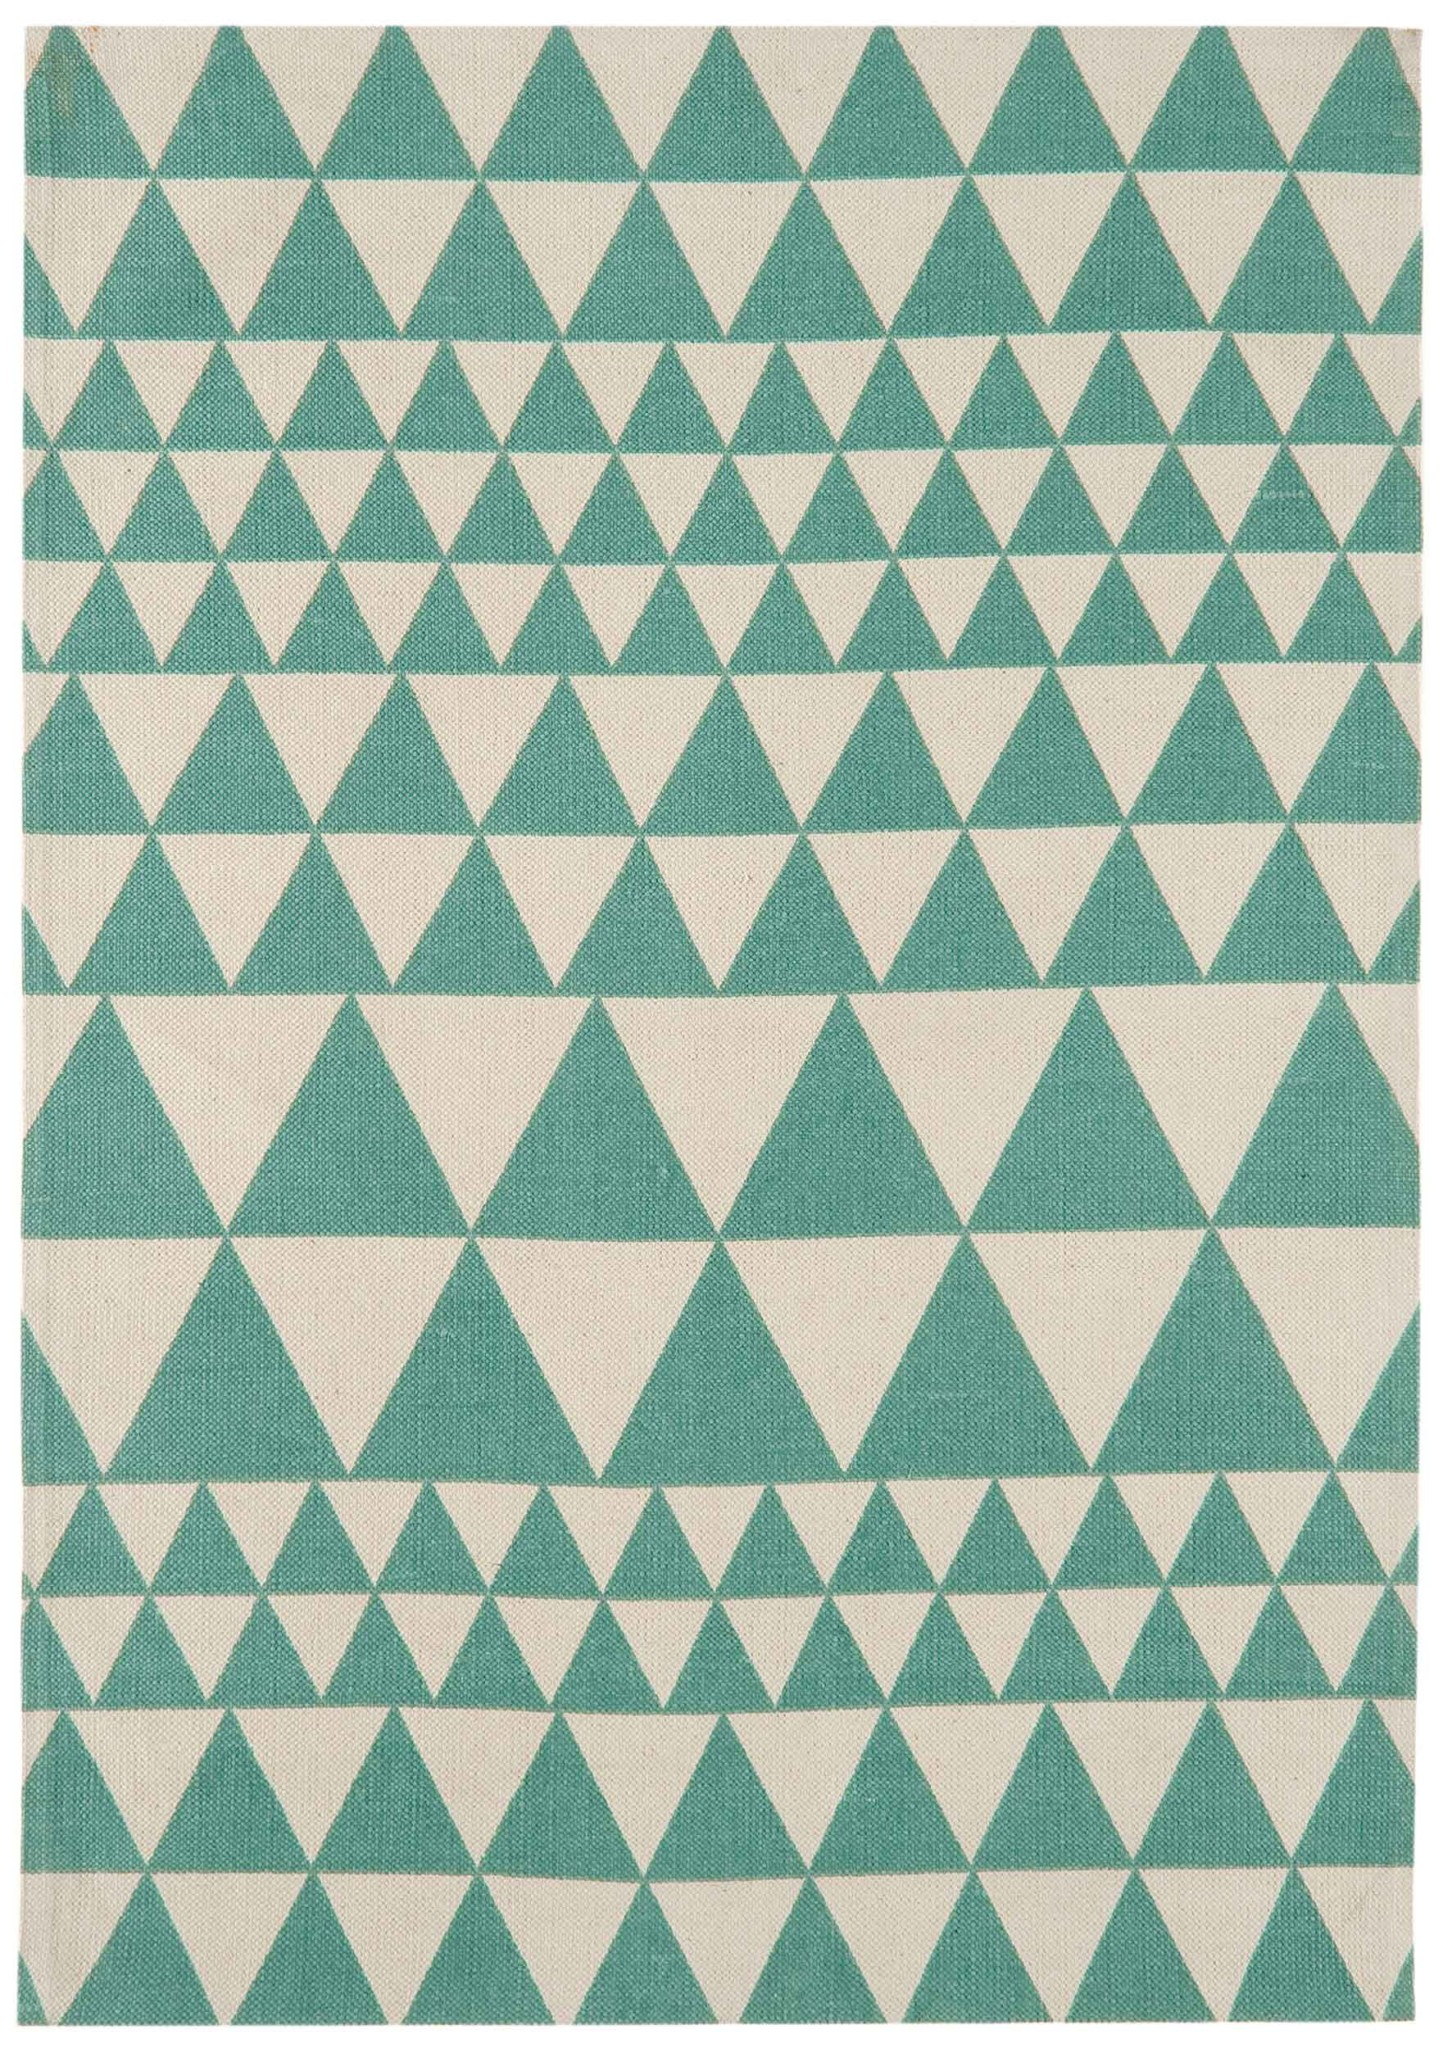 ON09-TRIANGLES-TEAL.jpg-1